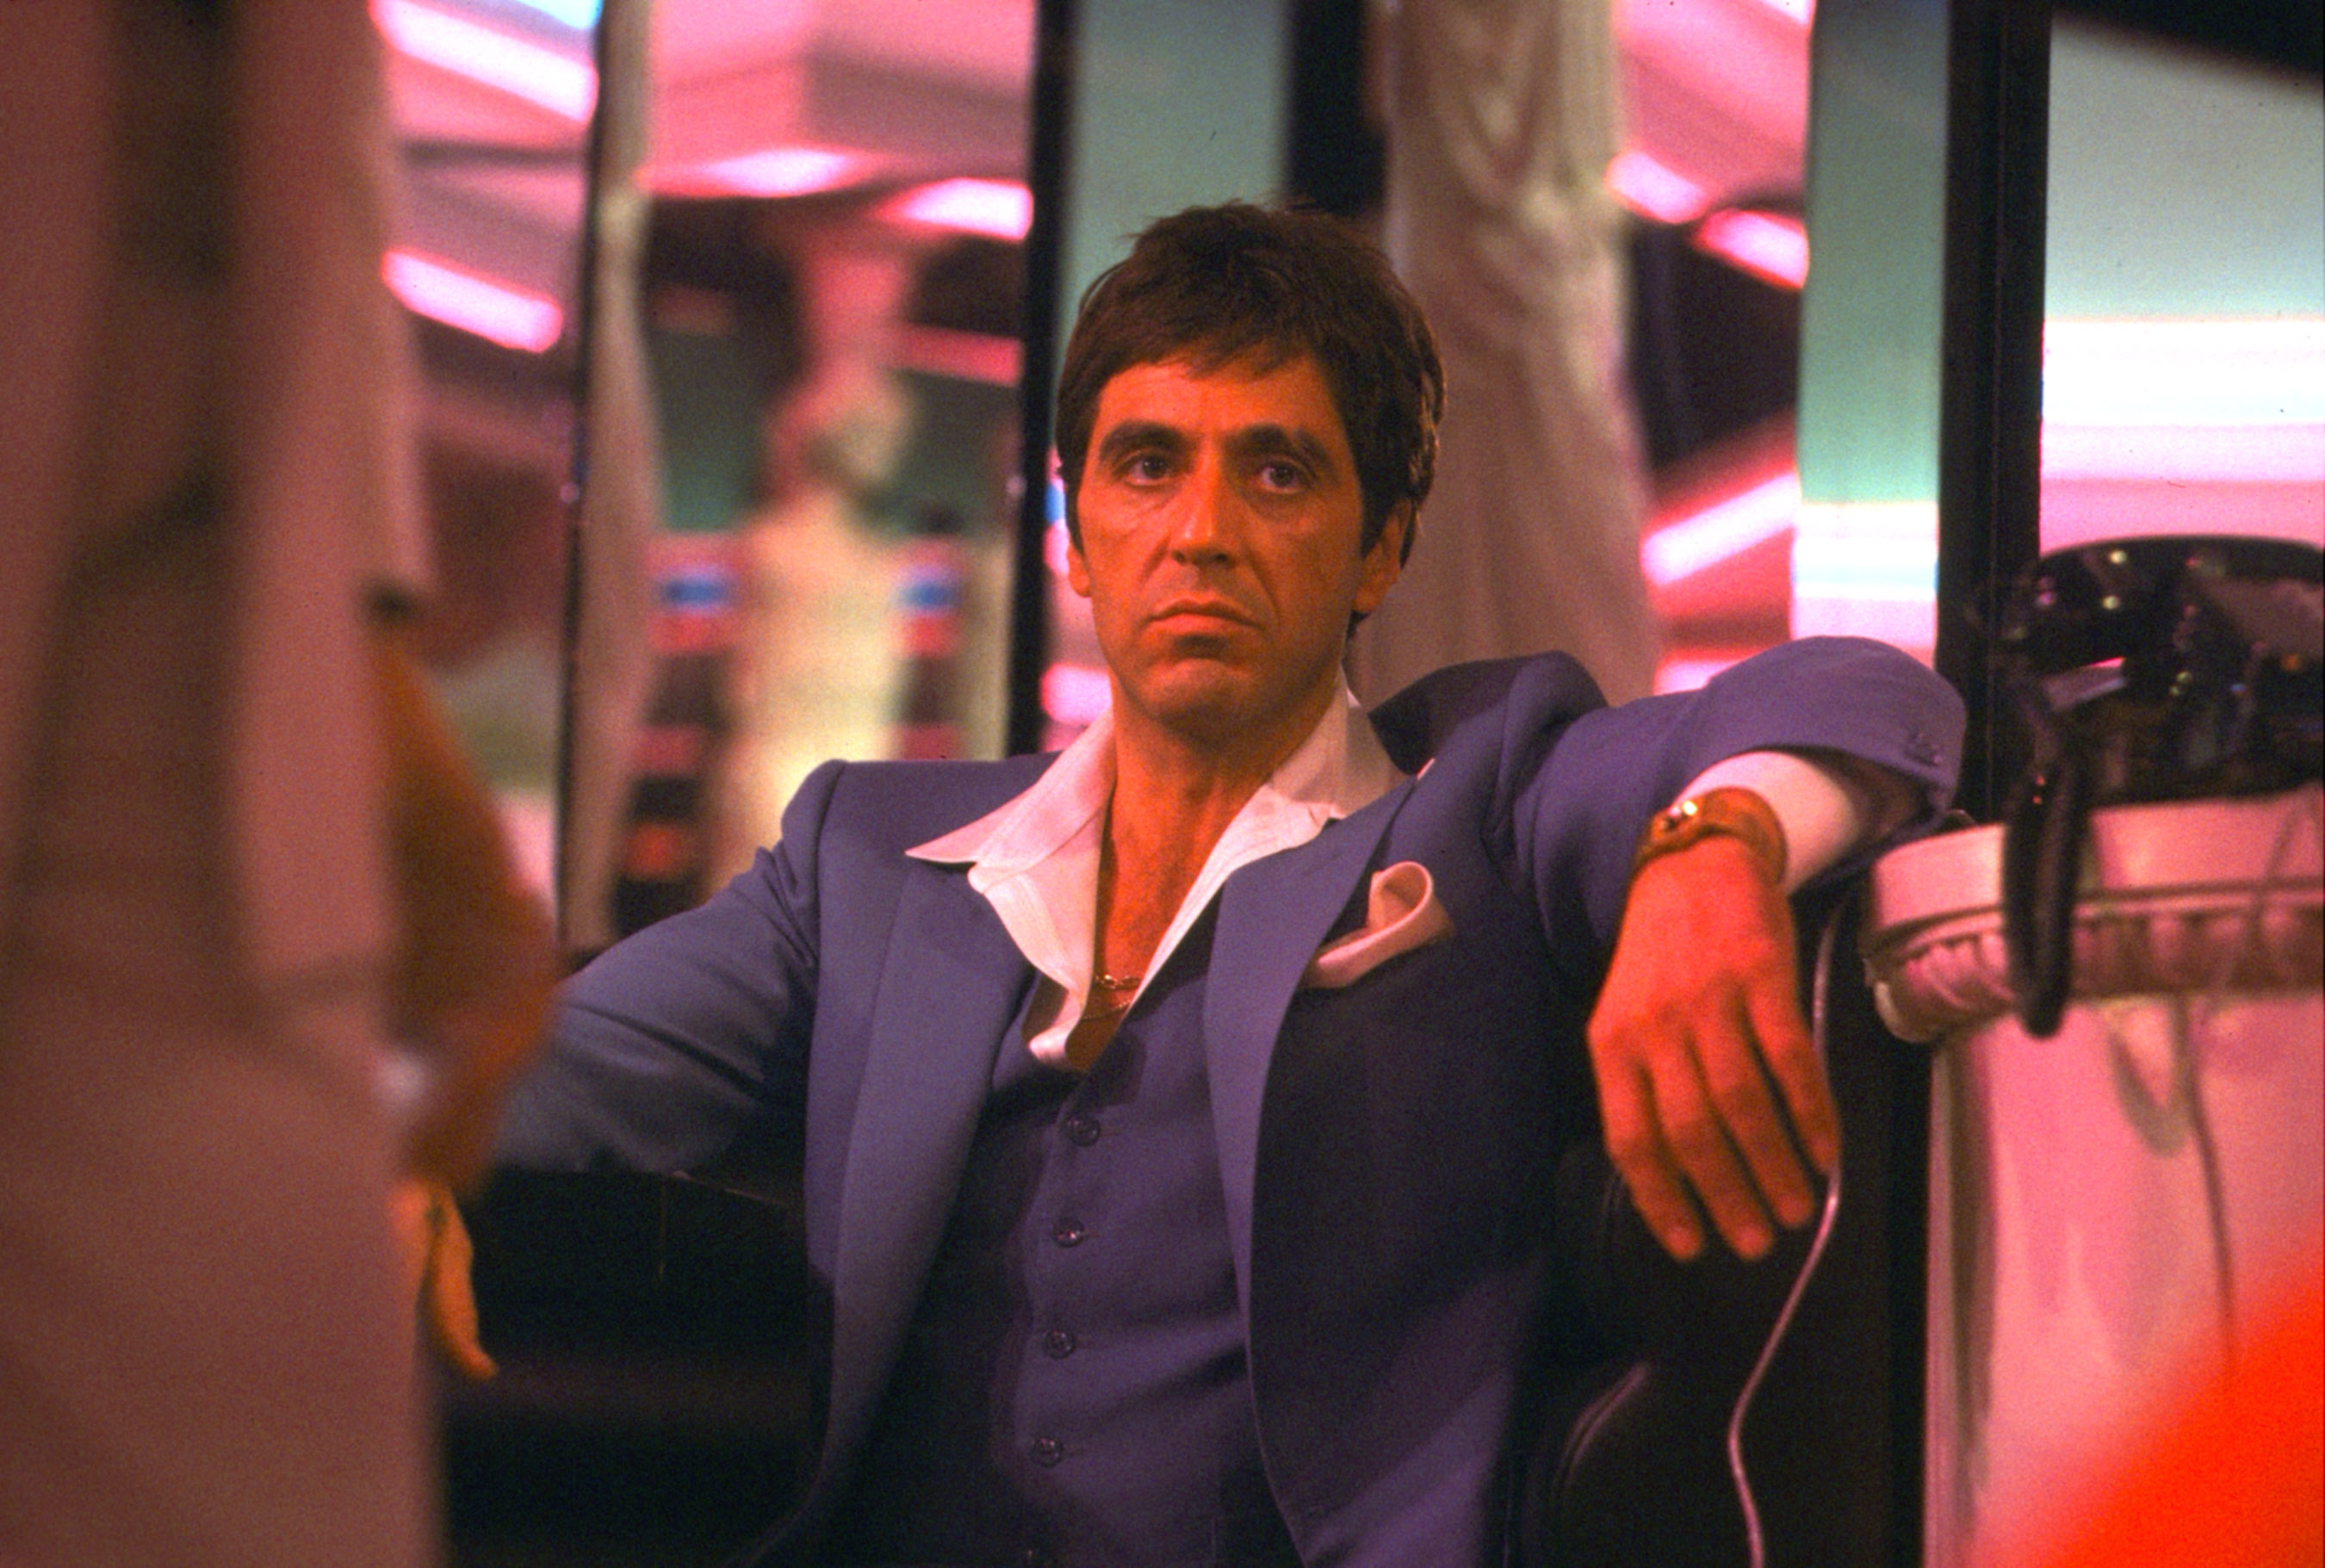 scarface reunion planned for tribeca film festival rolling stone